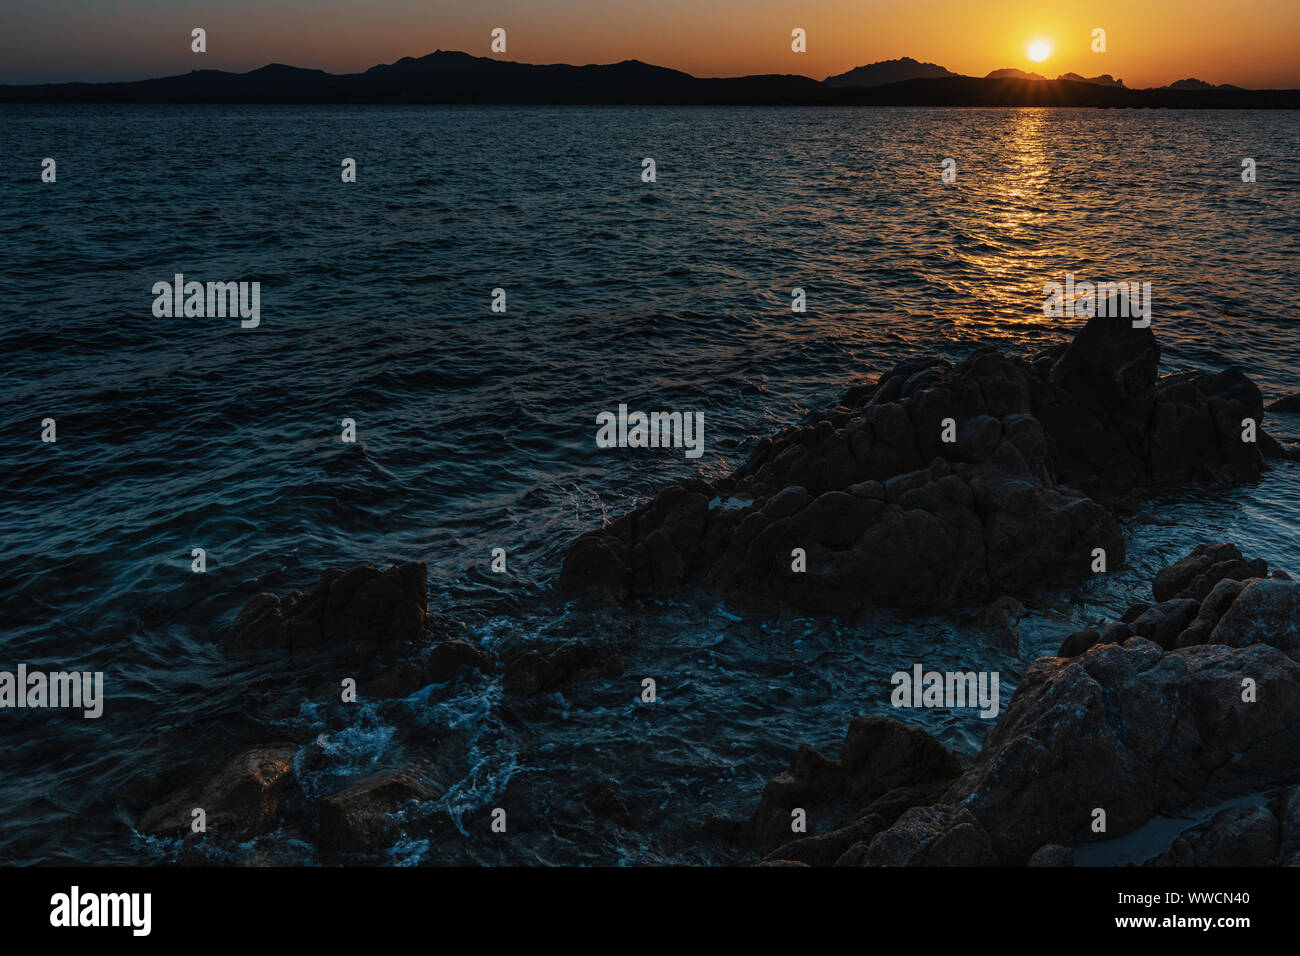 Beautiful mediterranean sunset with sunrays and rocks in the foreground Stock Photo